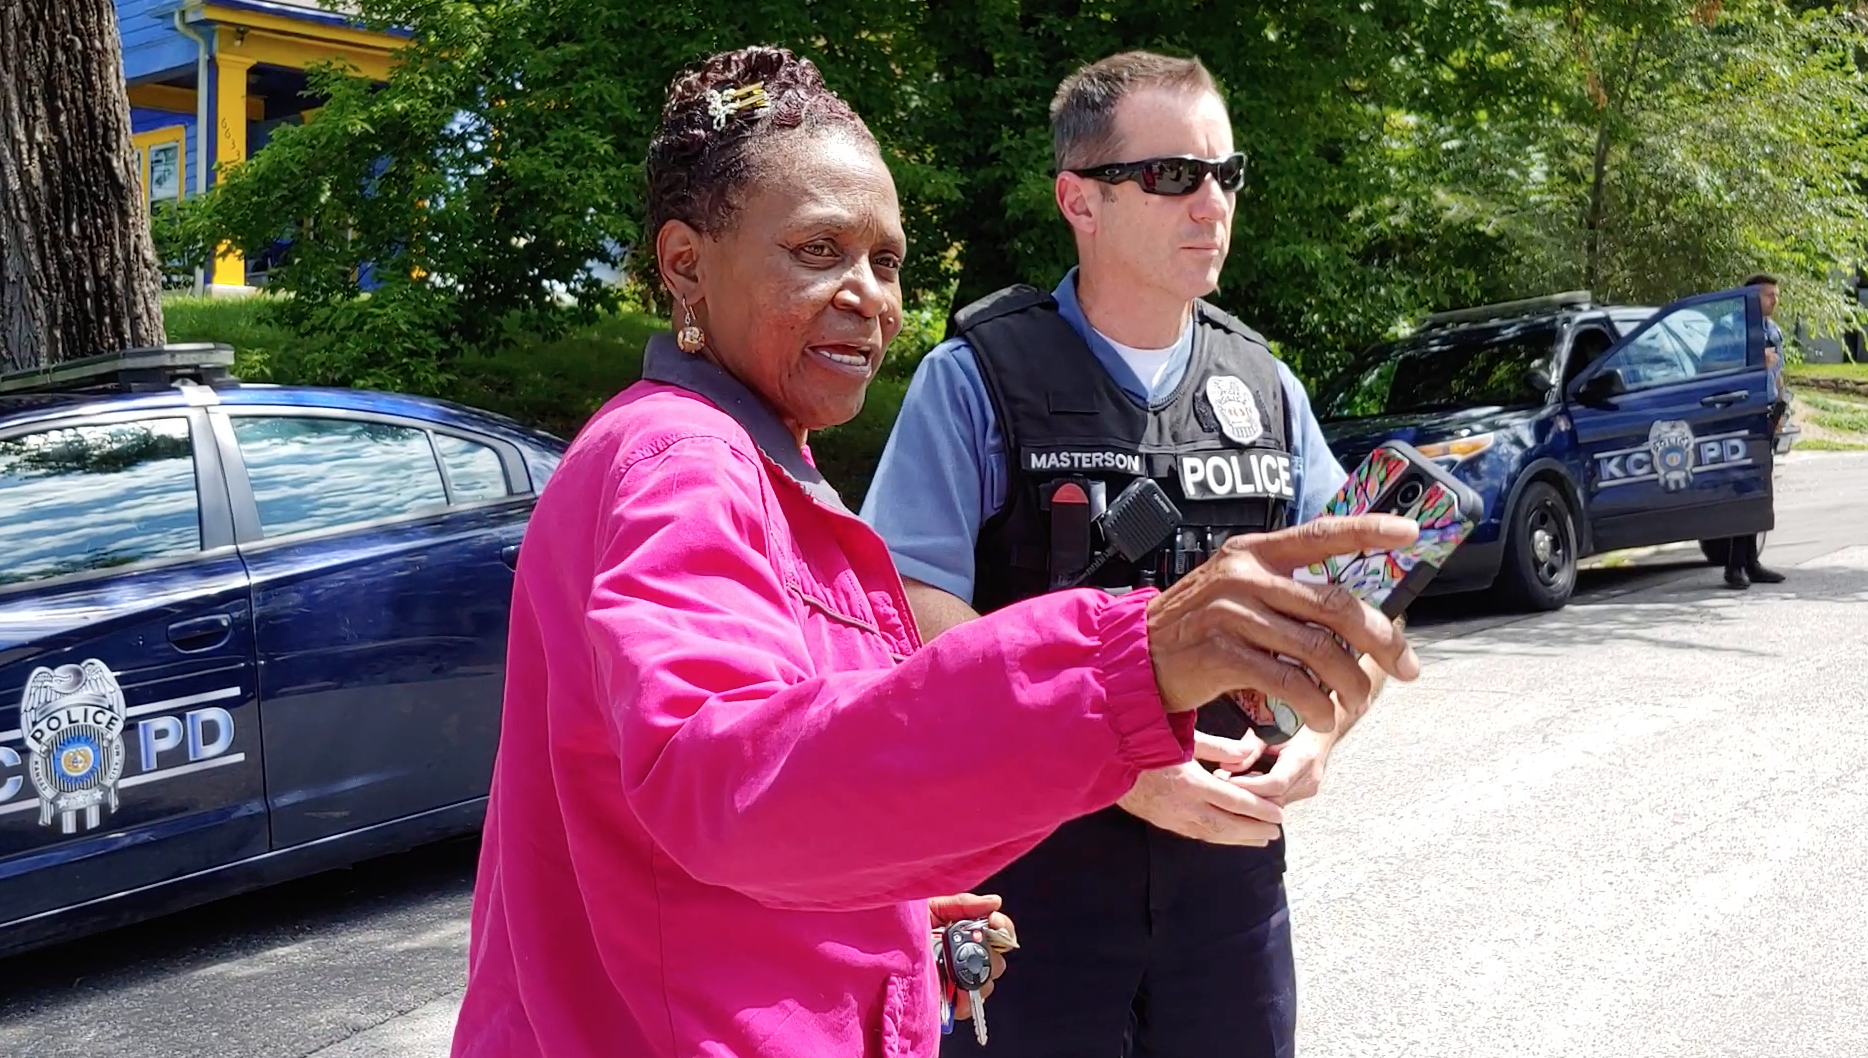 Nina Whiteside-McCord confers with Kansas City Police Community Interaction Officer Bryan Masterson